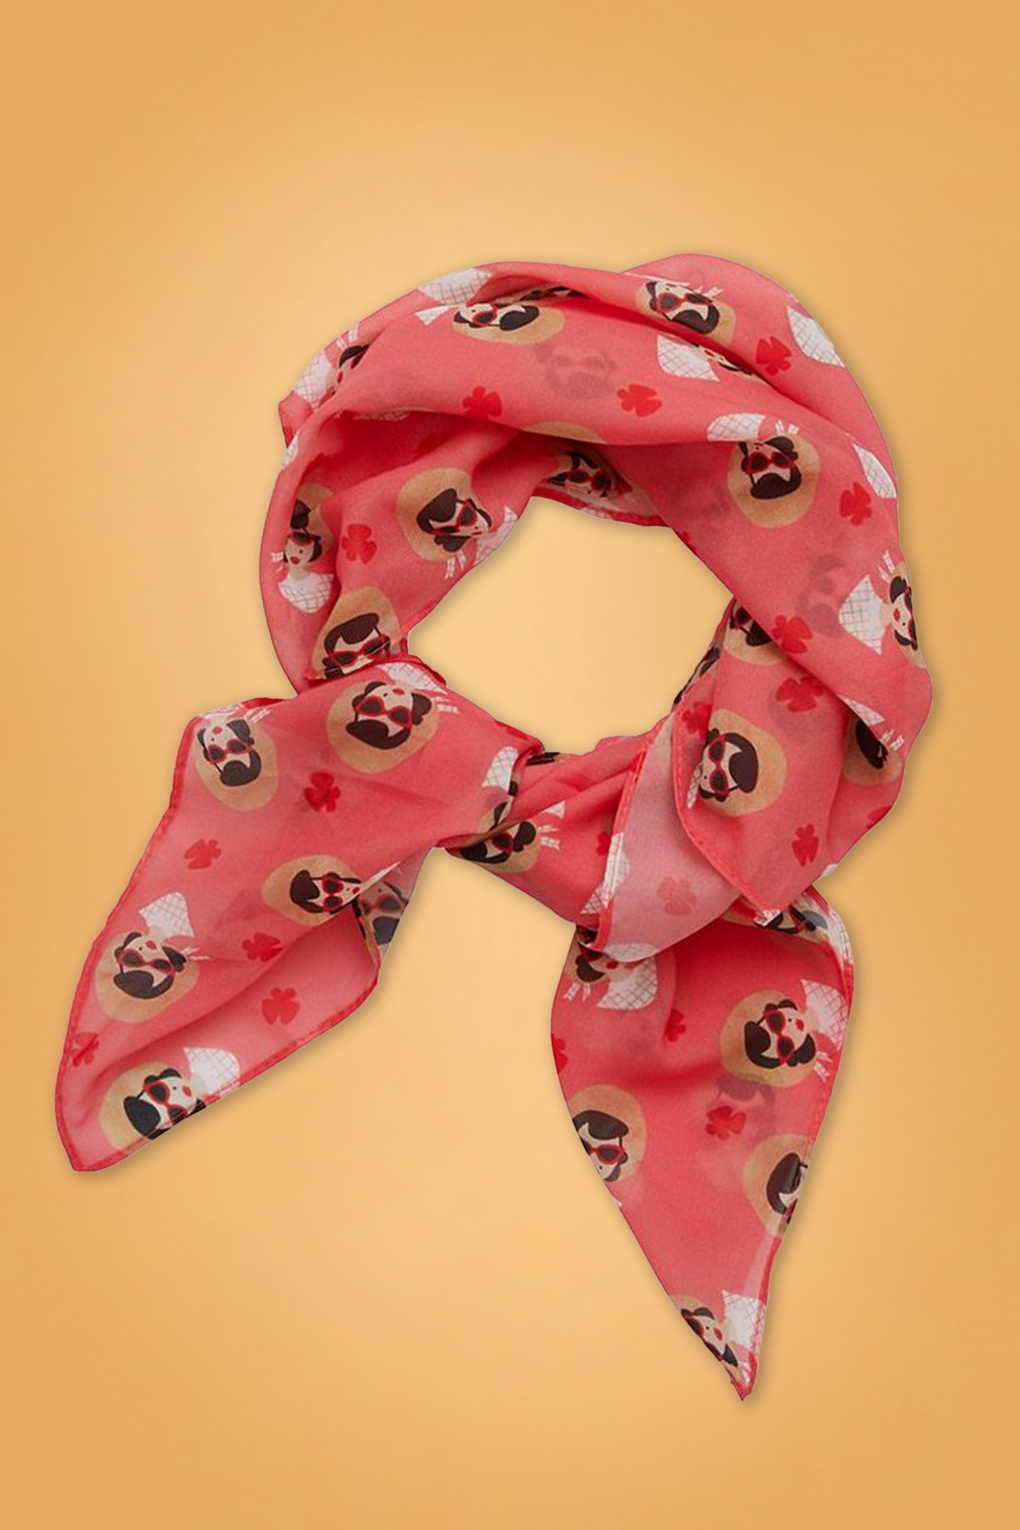 Vintage Scarf Styles -1920s to 1960s 50s Picnic Portrait Scarf £17.02 AT vintagedancer.com